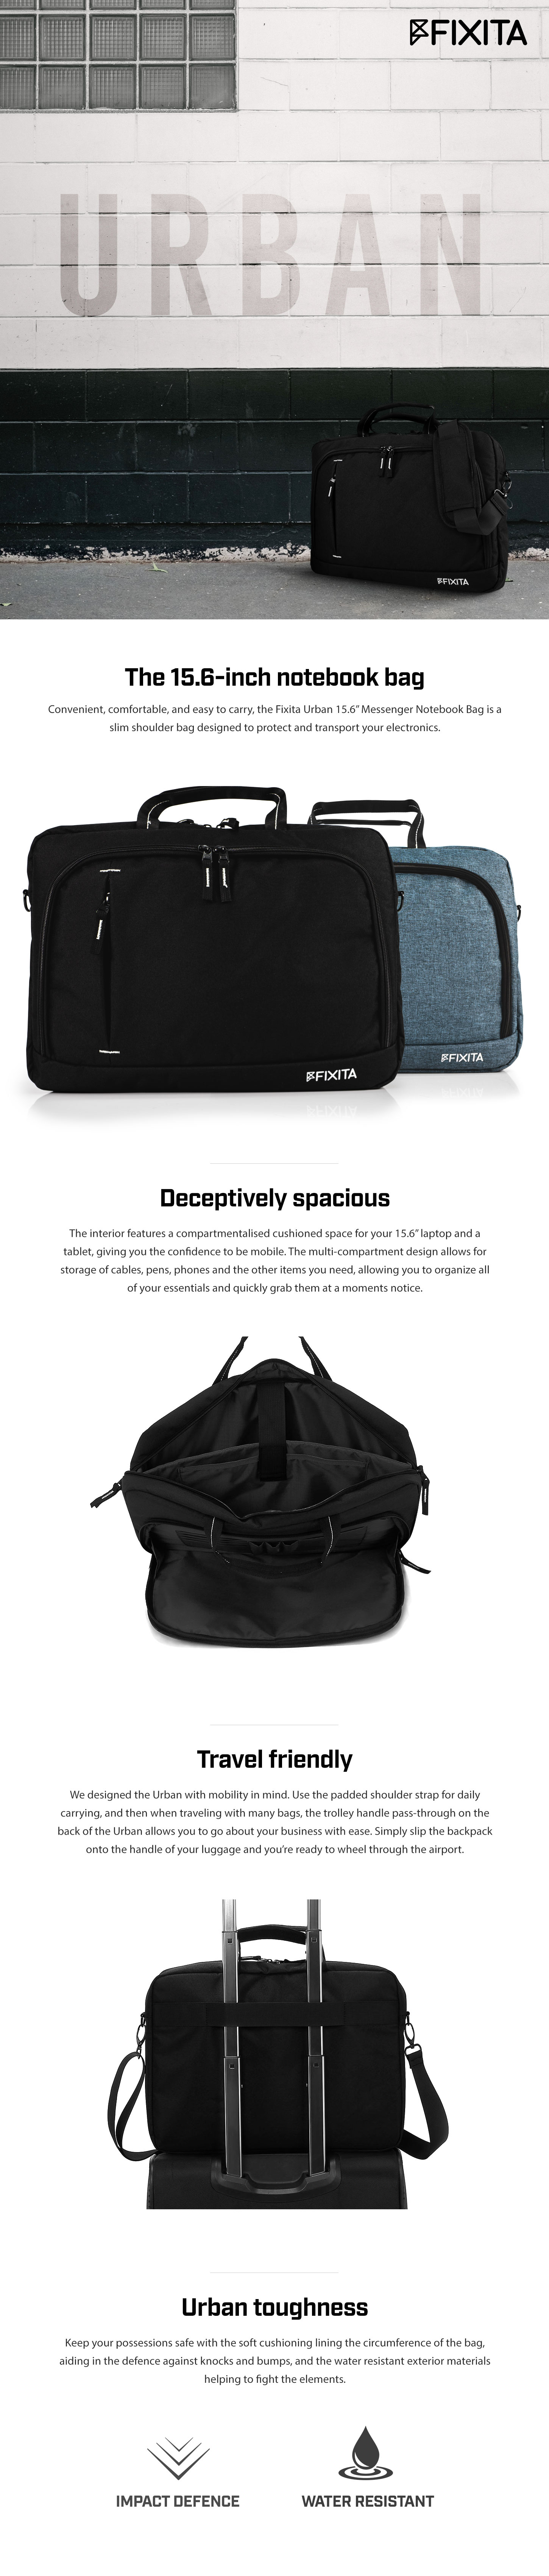 "A large marketing image providing additional information about the product Fixita Urban 15.6"" Black Messenger Notebook Bag - Additional alt info not provided"